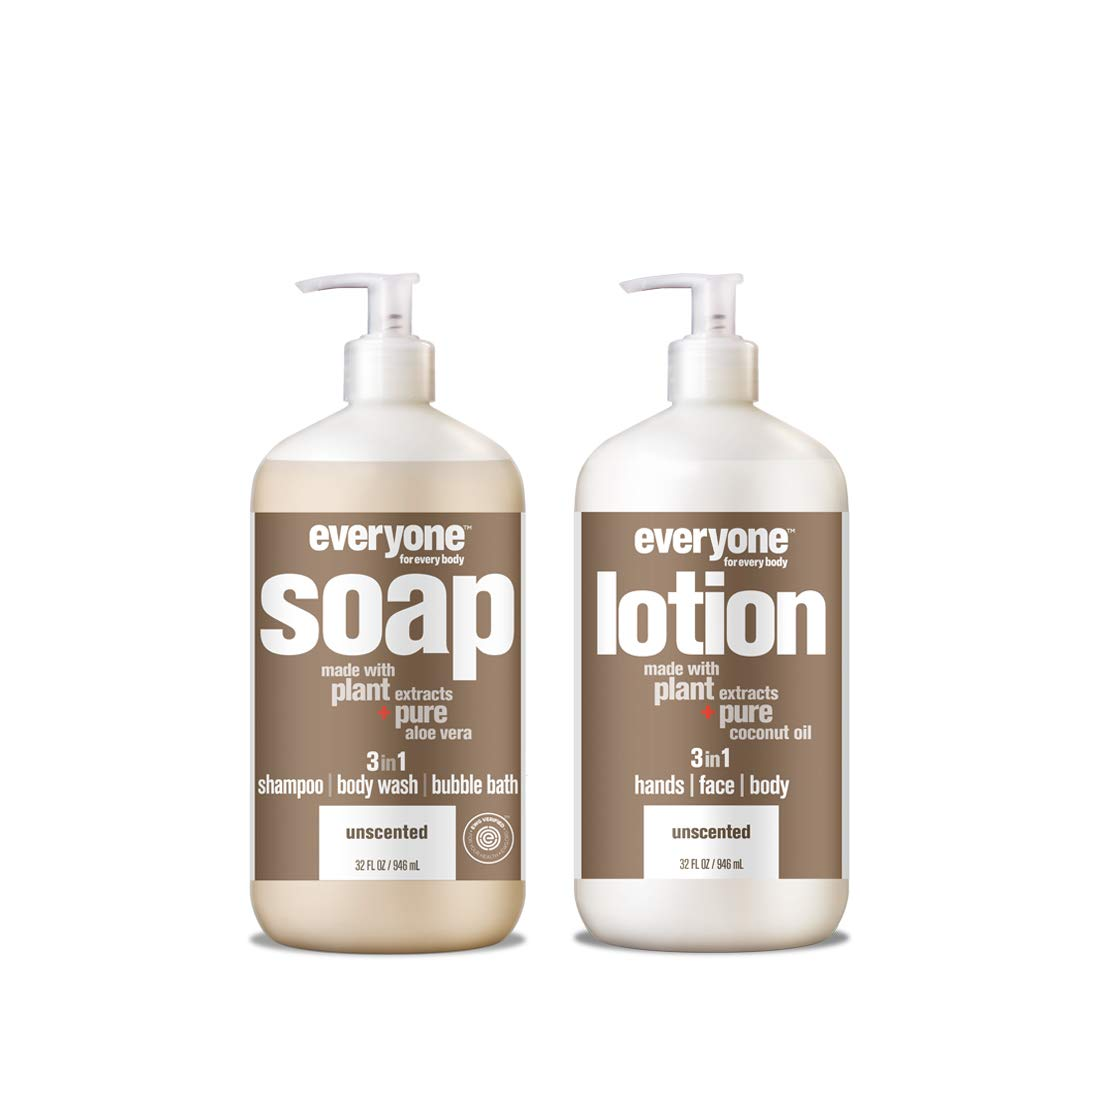 Everyone Soap & lotion combo unscented, 32 oz, 2Count by Everyone